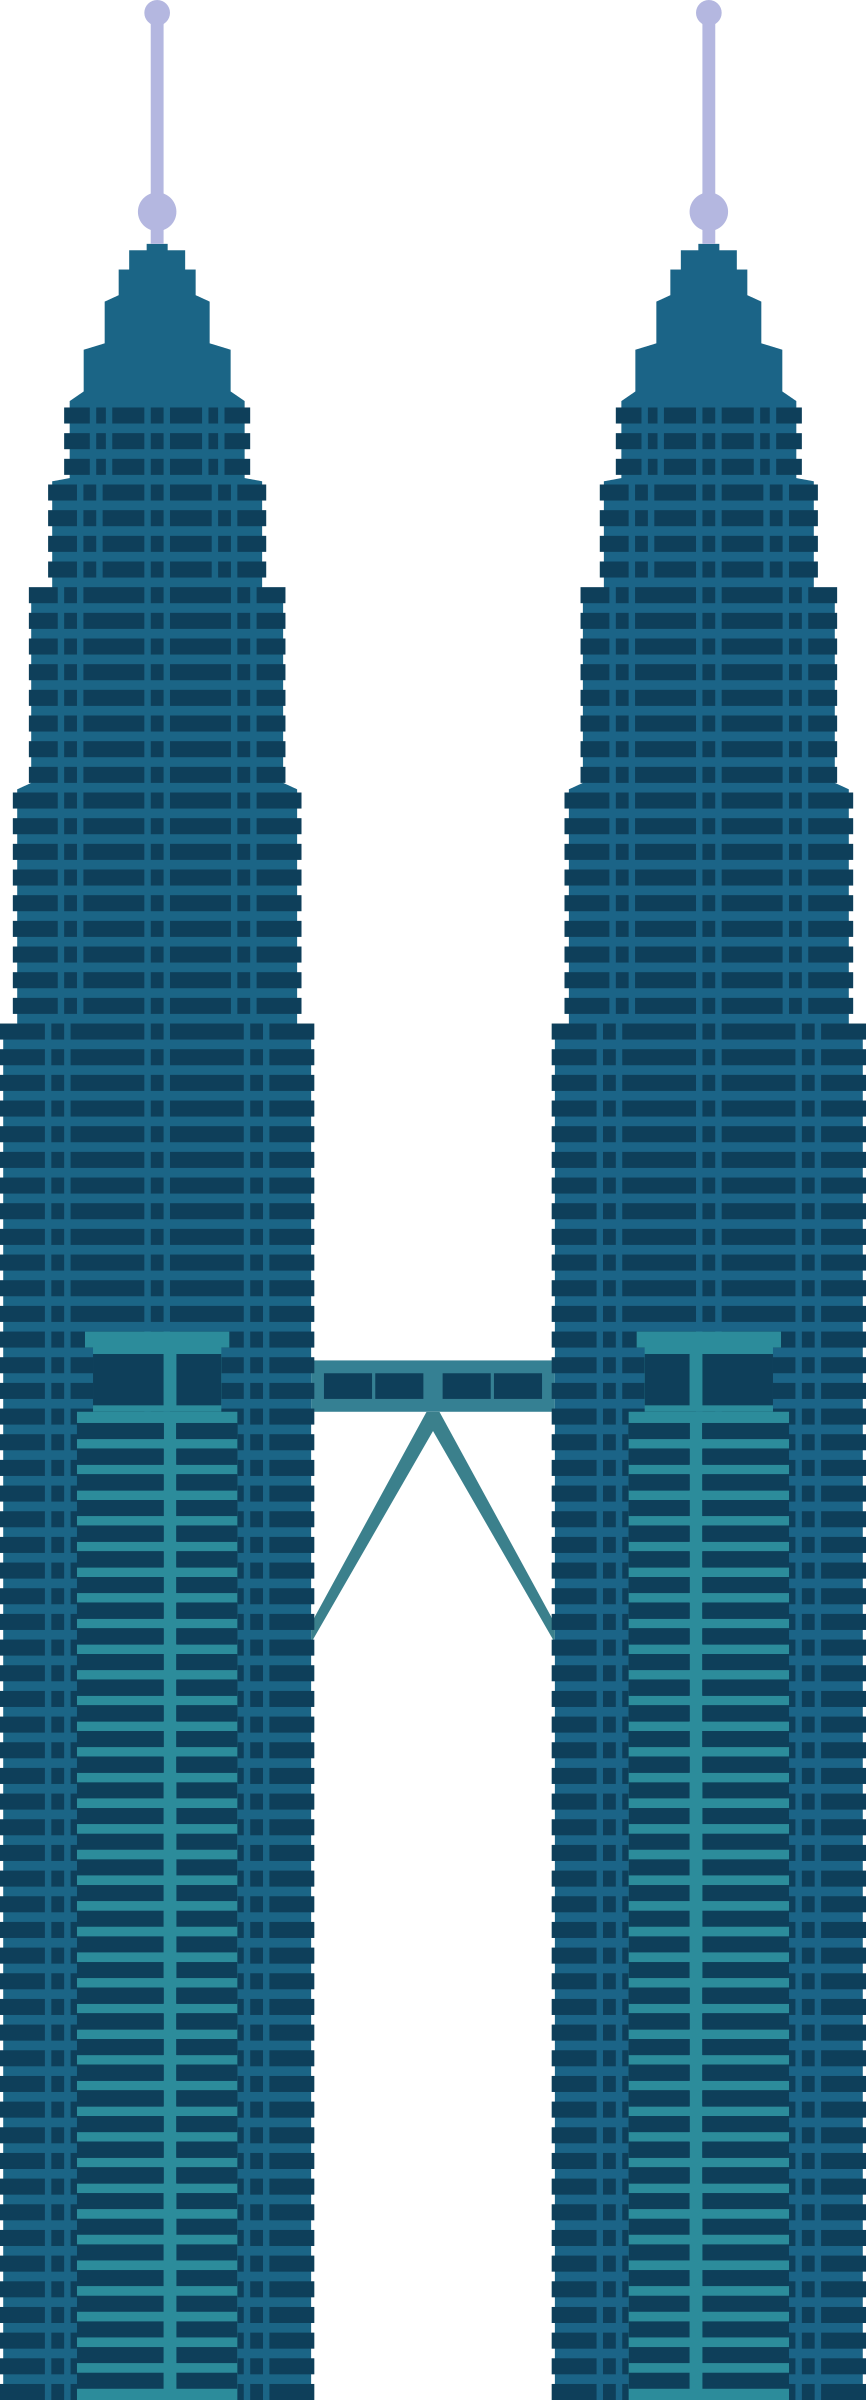 Tower clipart svg. Petronas twin towers icons